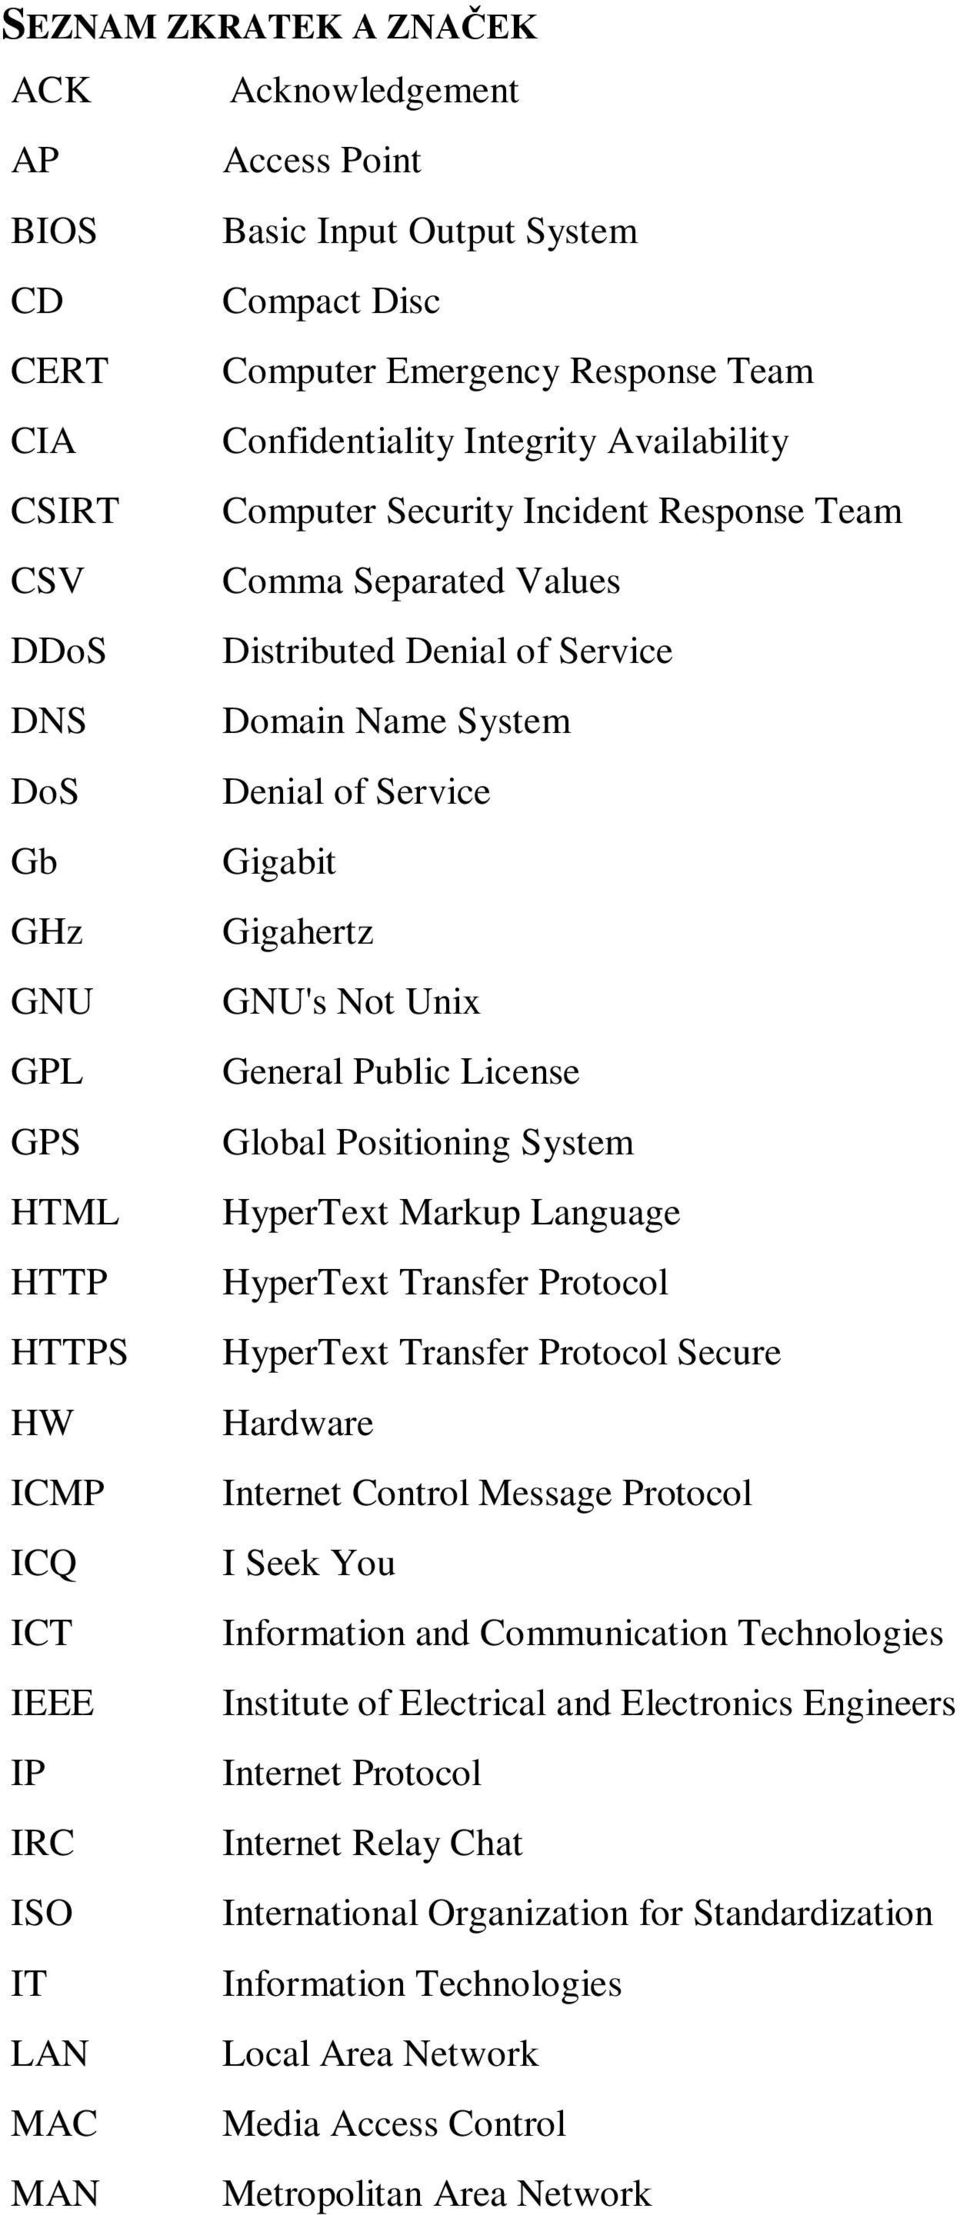 General Public License GPS Global Positioning System HTML HyperText Markup Language HTTP HyperText Transfer Protocol HTTPS HyperText Transfer Protocol Secure HW Hardware ICMP Internet Control Message